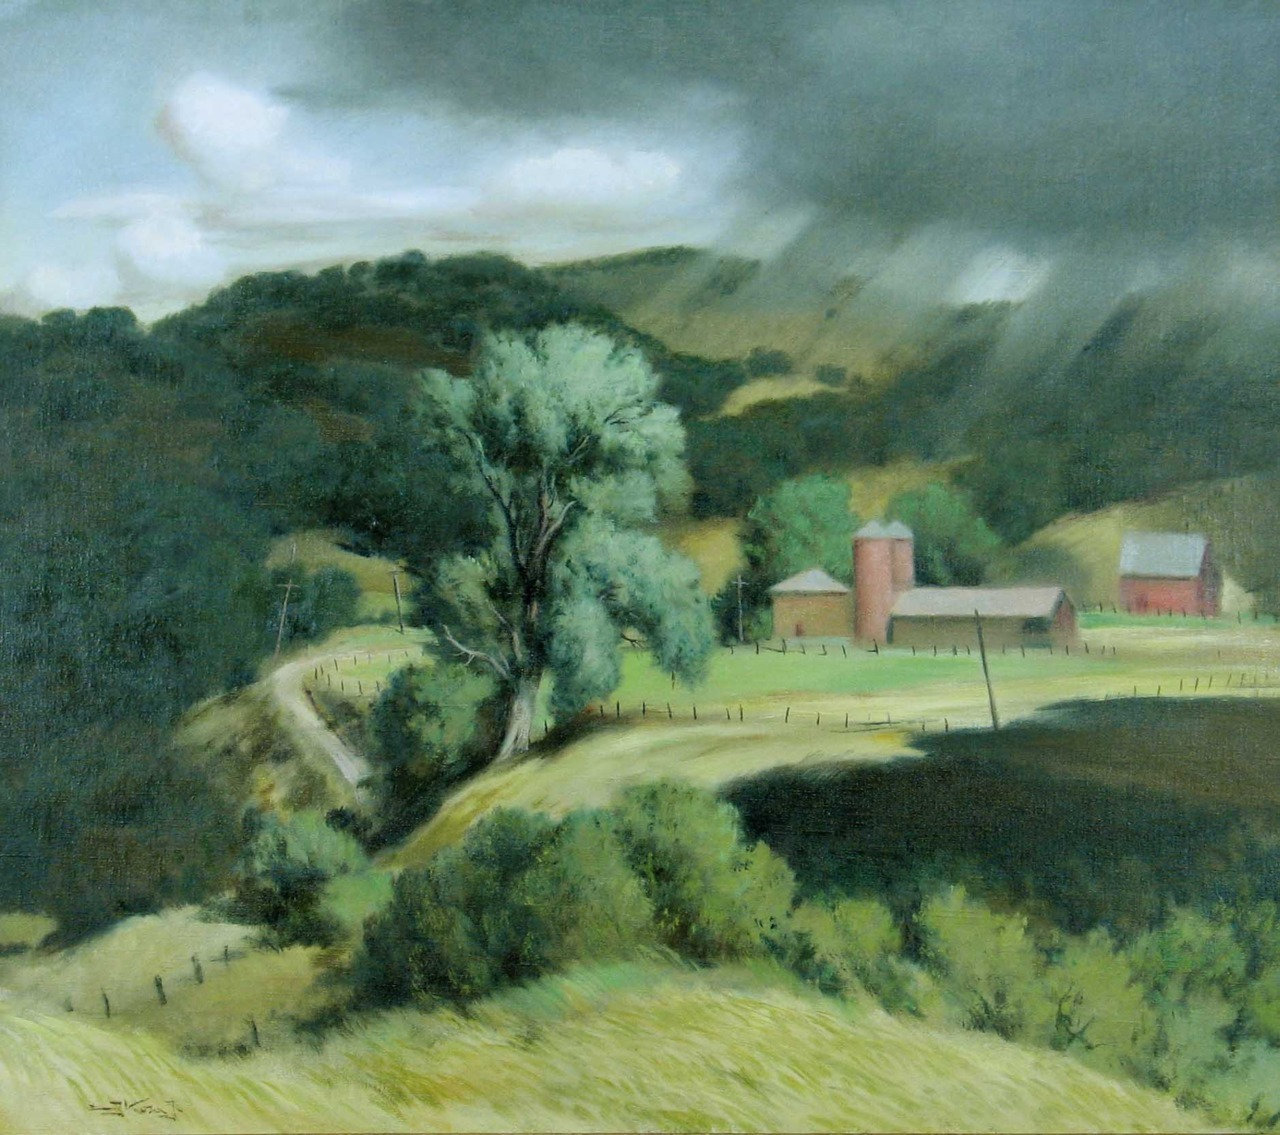 chasingtailfeathers:  Emil Kosa, Jr. (American, 1903-1968) Approaching Storm, Hidden Valley, 1940 Oil on canvas